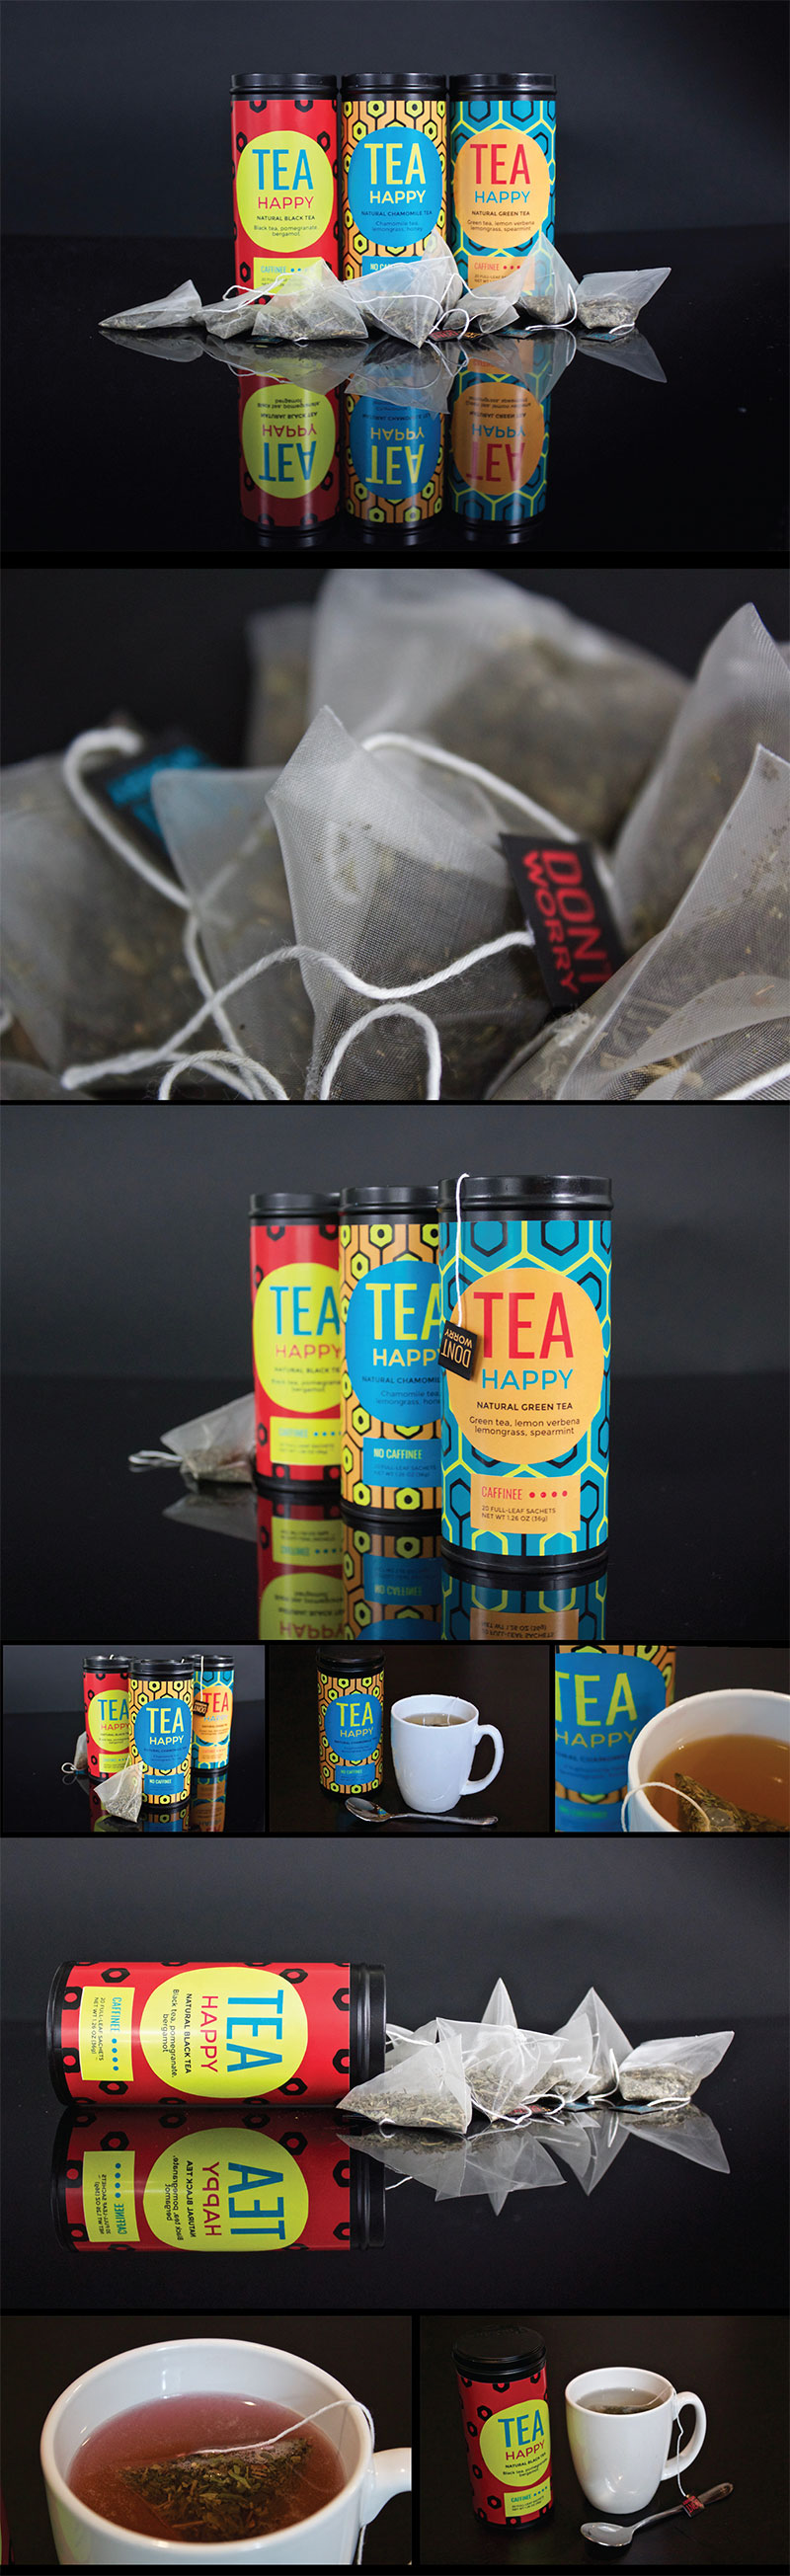 Tea Happy packaging by Carsyn Schares